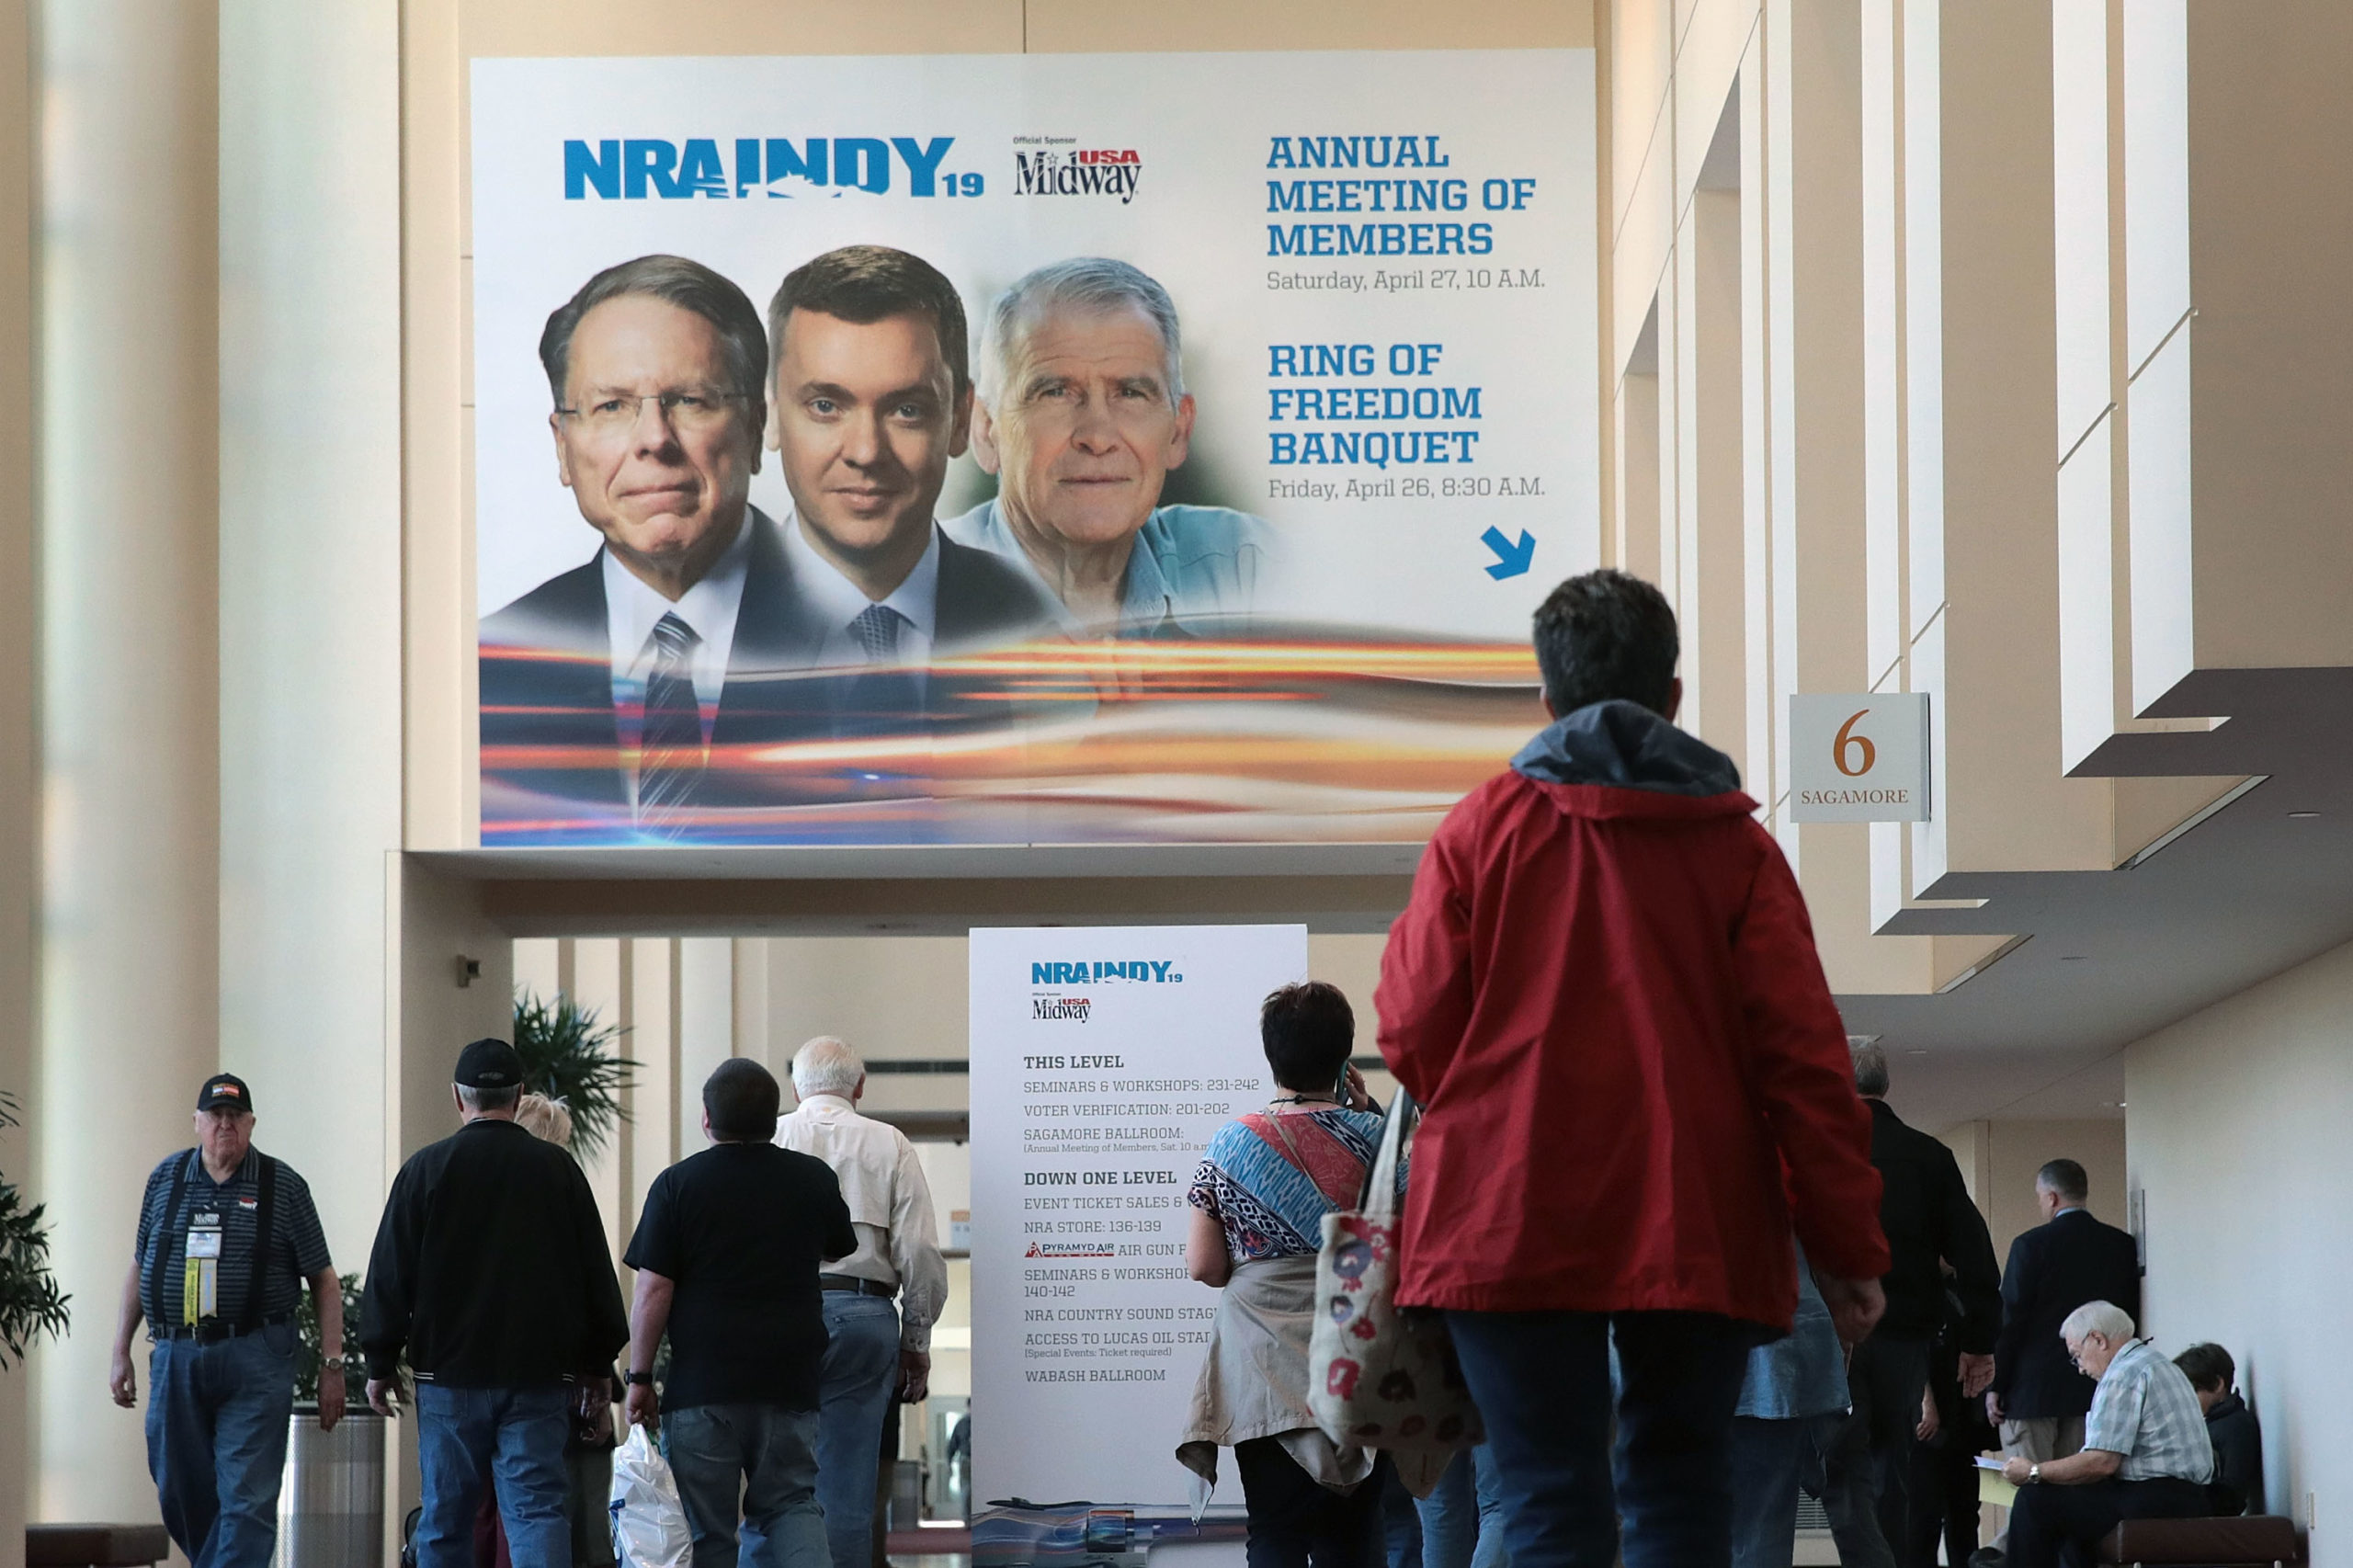 INDIANAPOLIS, INDIANA - APRIL 27: Guest walk under a poster featuring Wayne LaPierre (L), NRA vice president and CEO, Chris Cox (C), executive director of the NRA-ILA, and NRA president Oliver North outside a conference room where the NRA annual meeting of members was being held at the 148th NRA Annual Meetings & Exhibits on April 27, 2019 in Indianapolis, Indiana. A statement was read at the meeting announcing that NRA president Oliver North, whose seat at the head table remained empty at the event, would not serve another term. There have been recent reports of tension between LaPierre and North, with North citing financial impropriety within the organization. (Scott Olson/Getty Images)